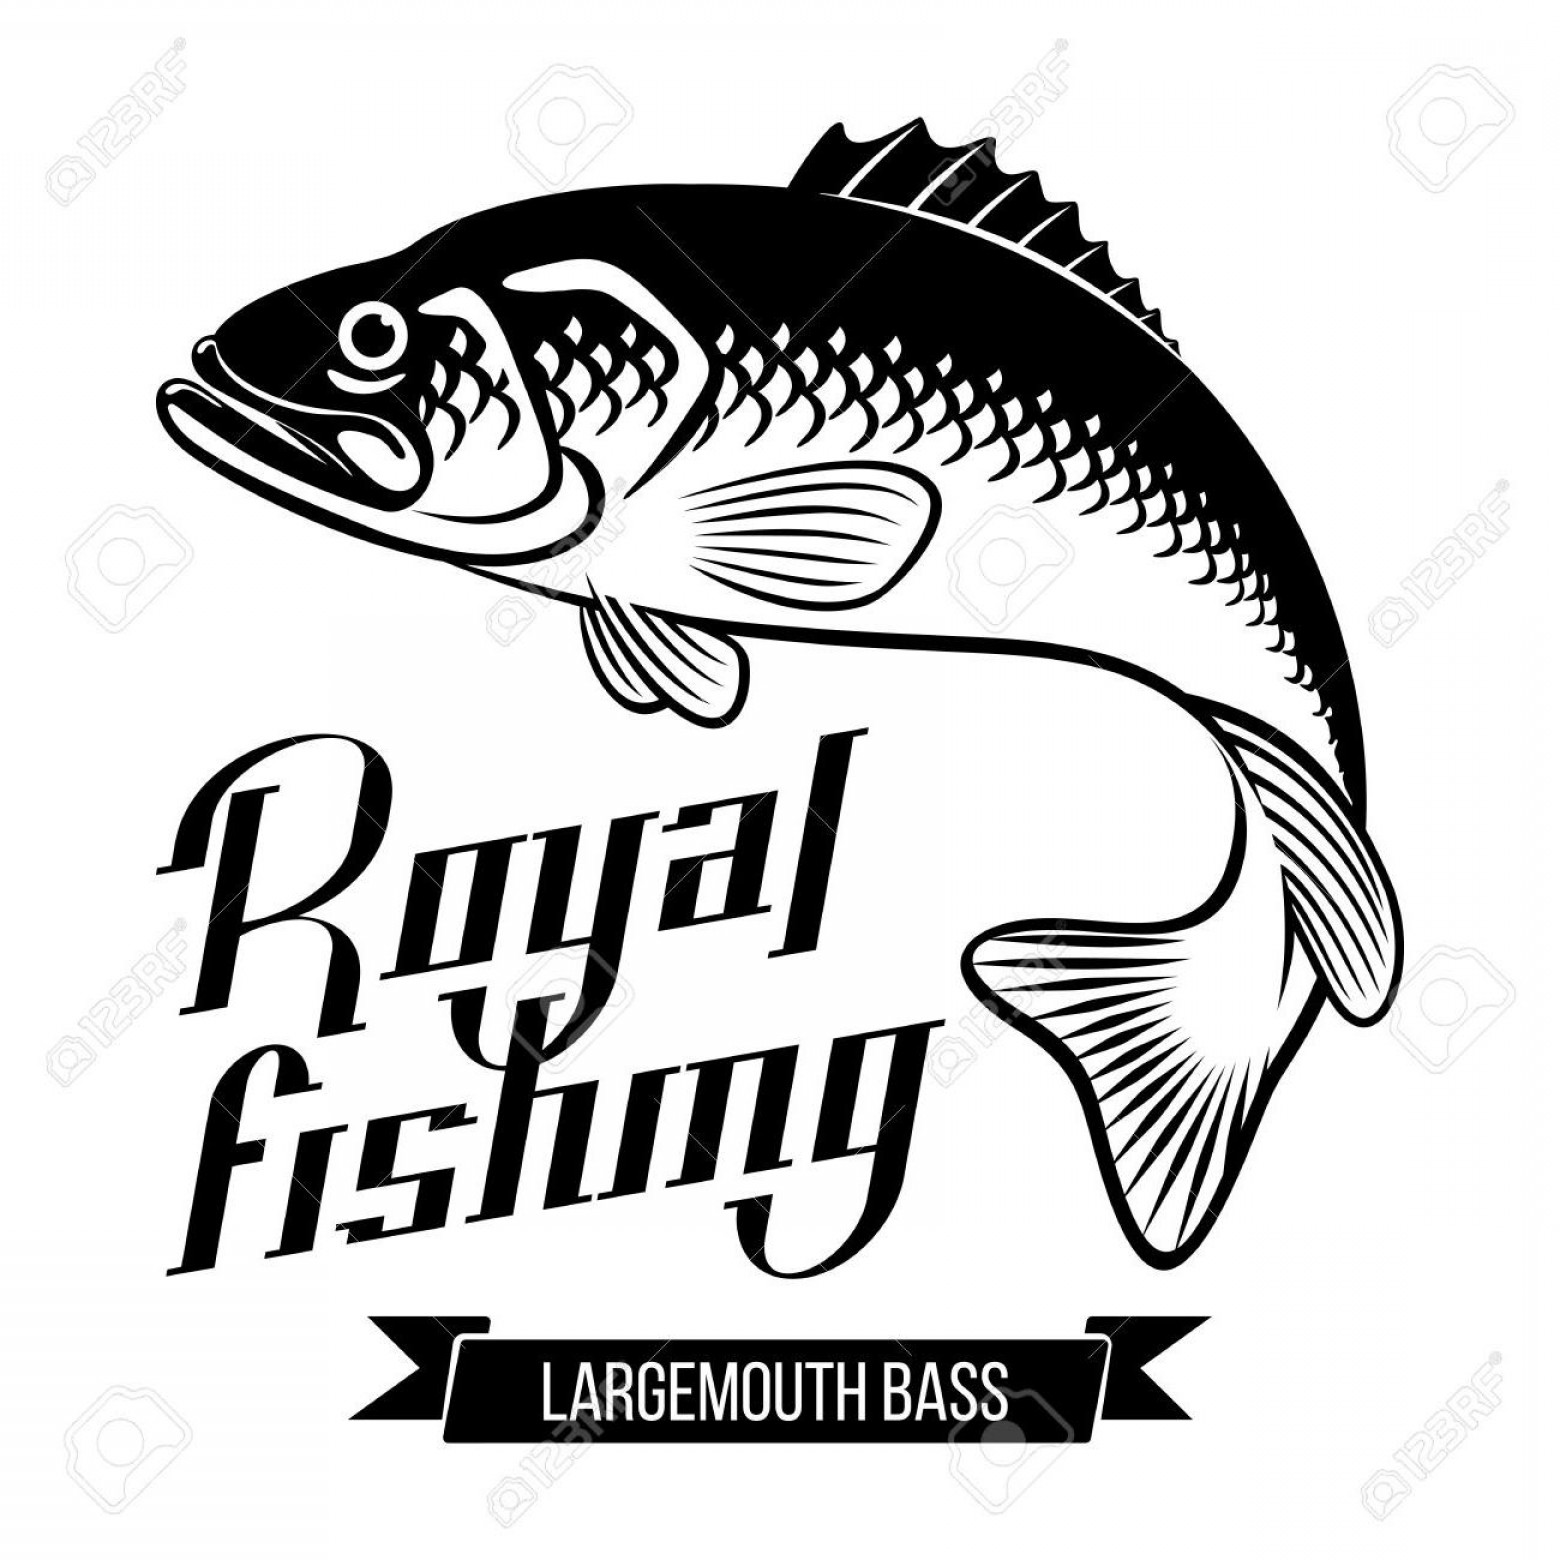 Largemouth Bass Silhouette Vector: Best Largemouth Bass Fish Vector Illustration Royal Fishing Calligraphy File Free